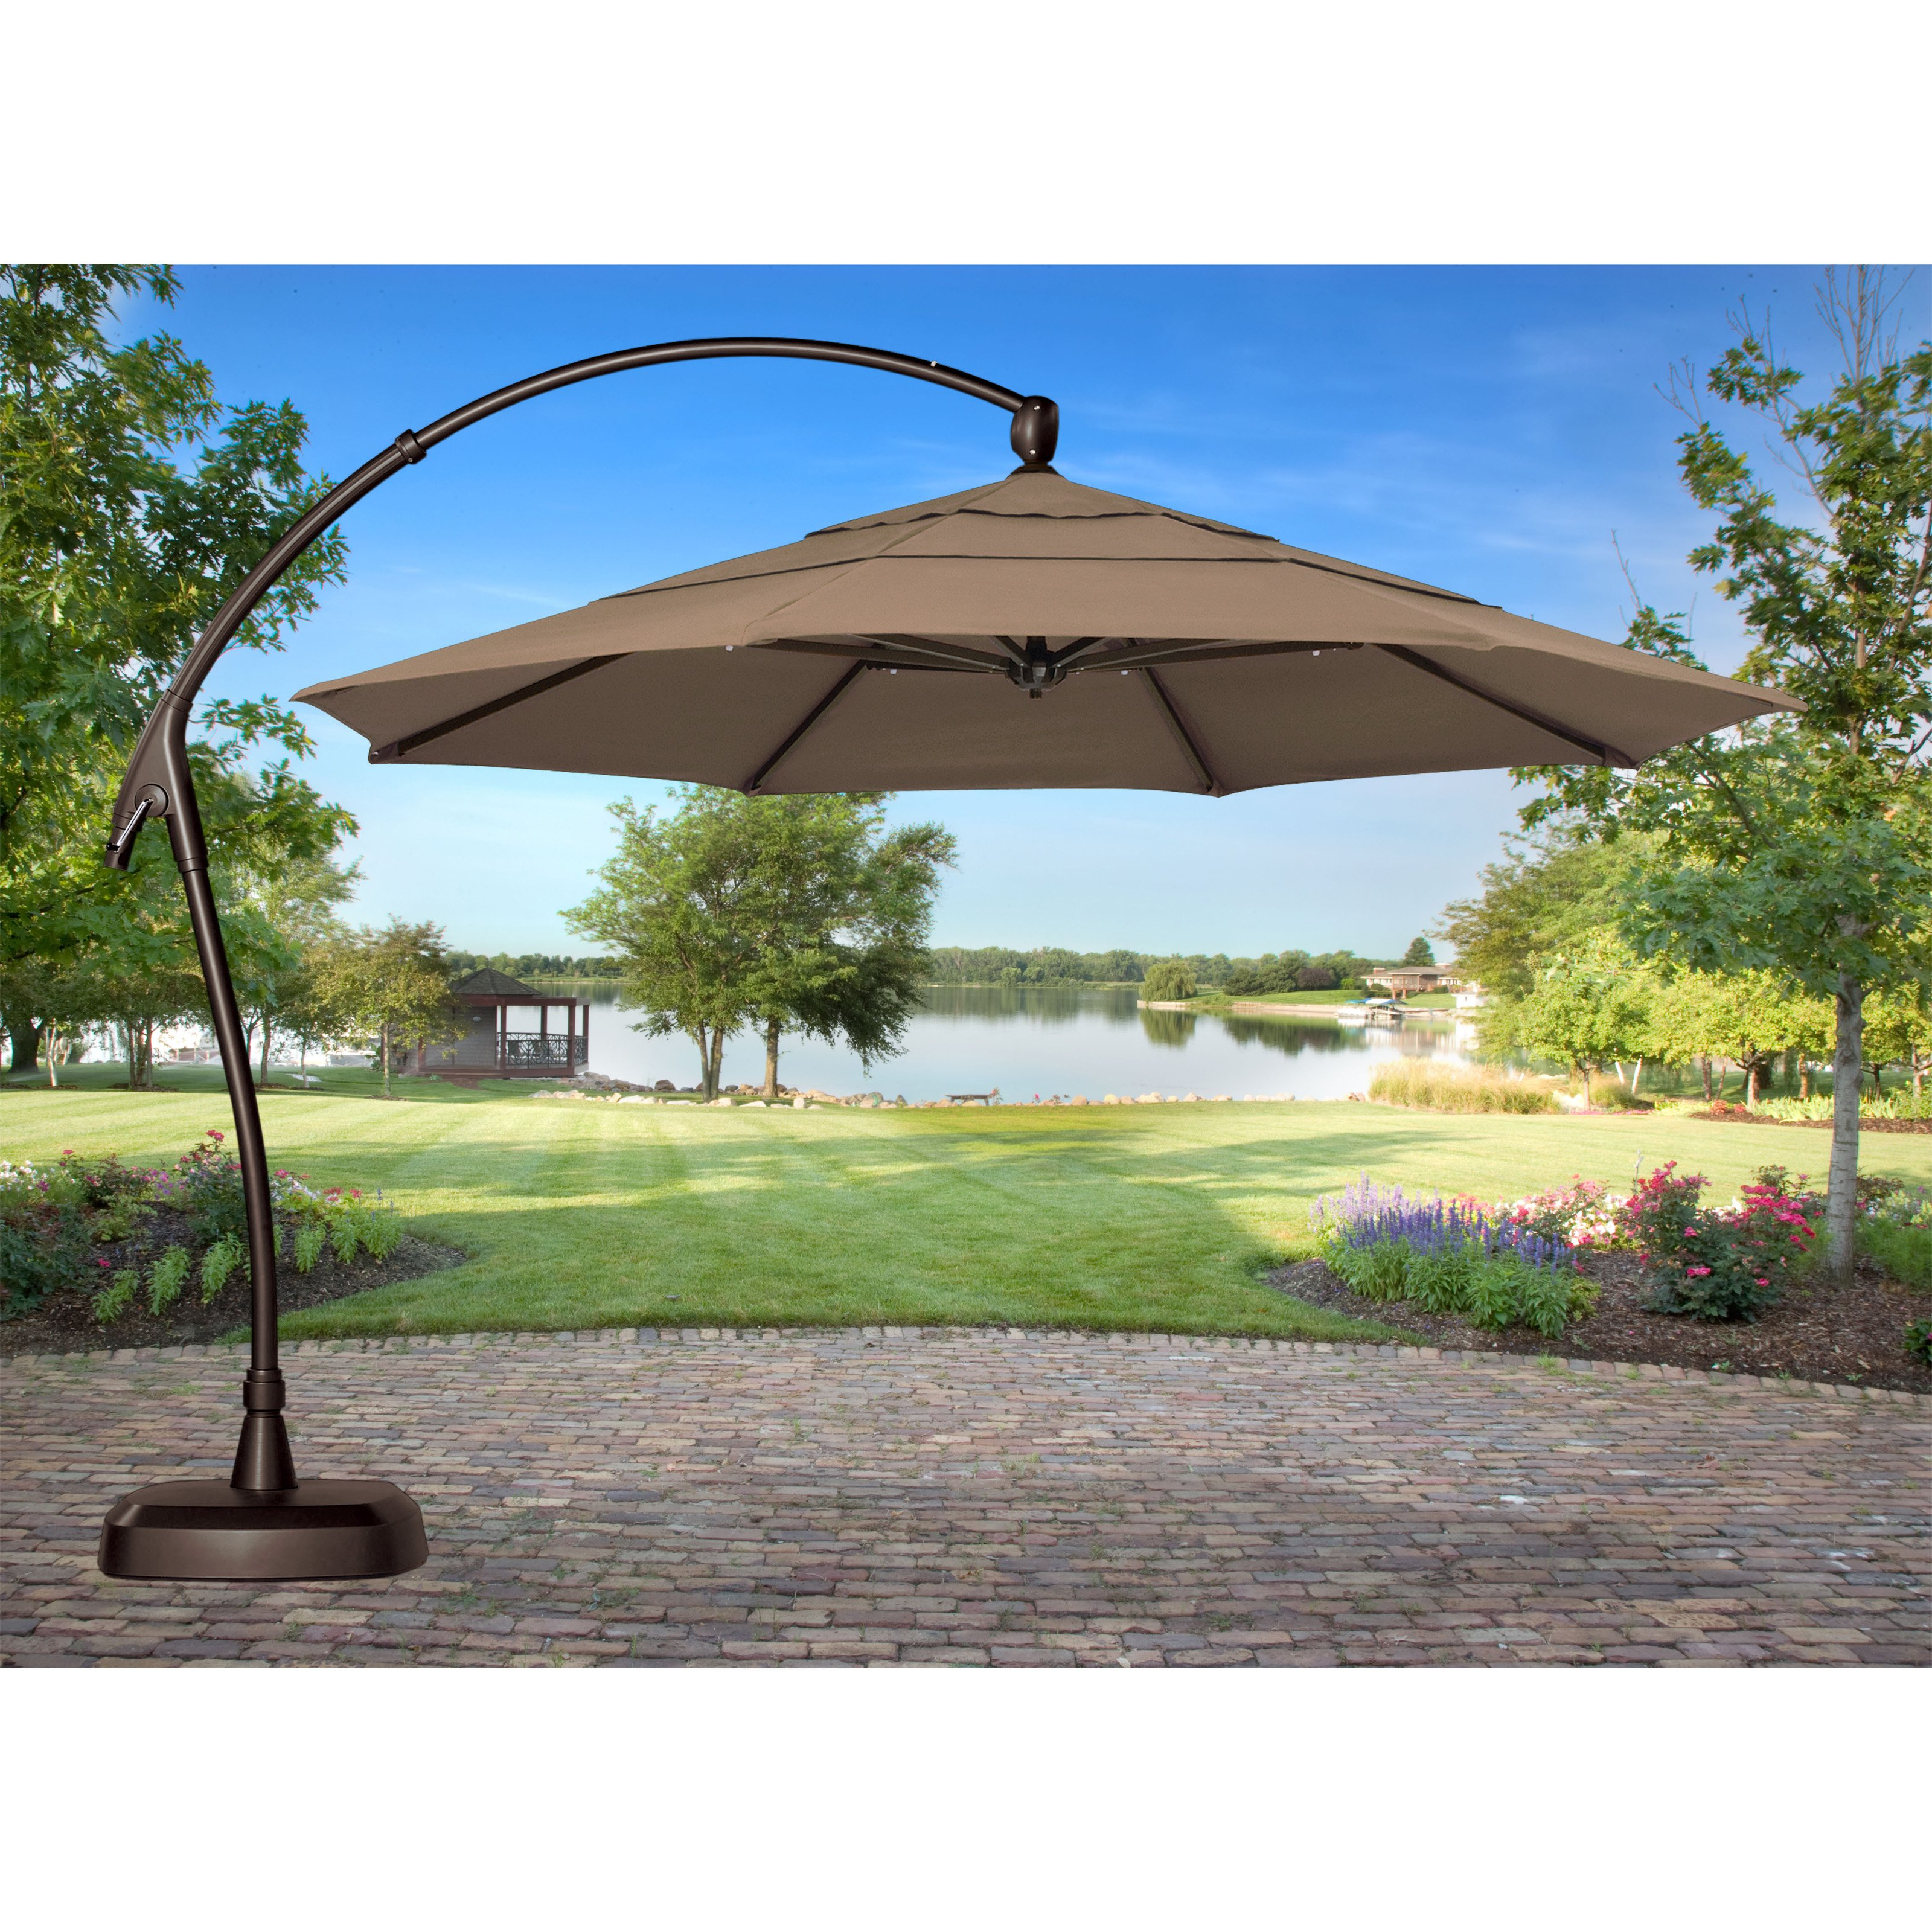 Tan Cantilever Patio Umbrella With Brown Metal Stand For Patio Furniture  Ideas